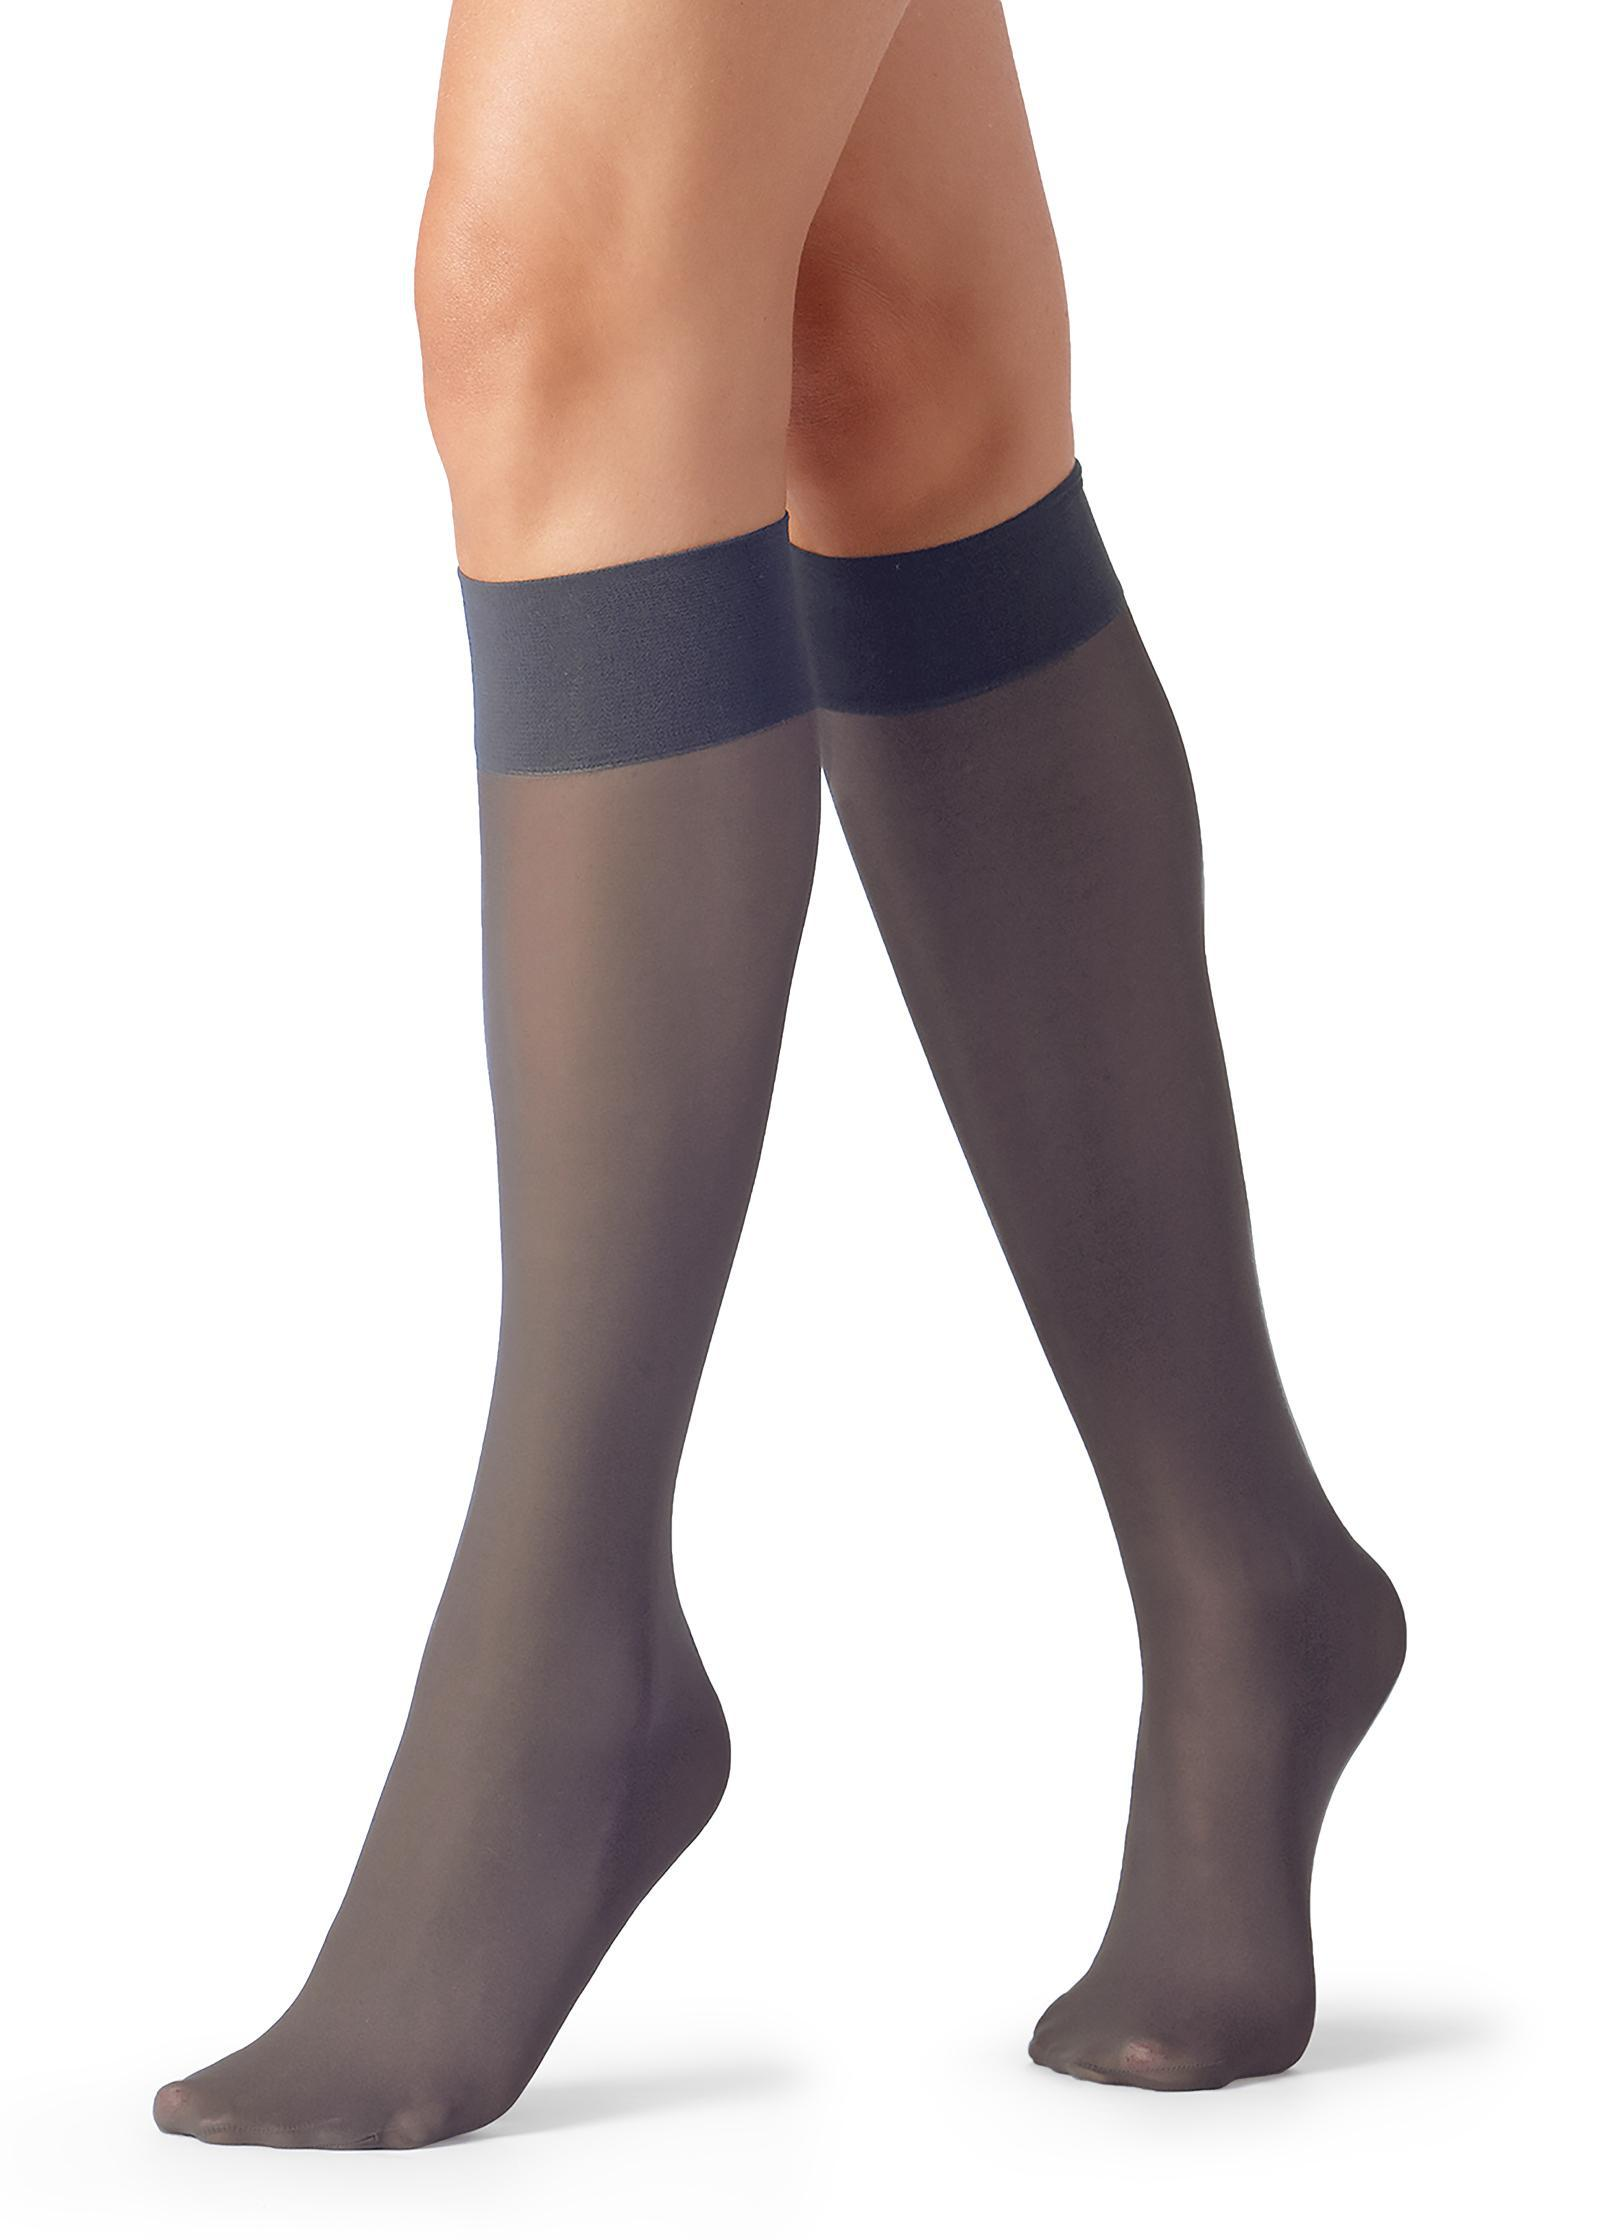 48a2aed89 Lyst - Calzedonia 30 Denier Semi Opaque Microfiber Knee-highs in Gray